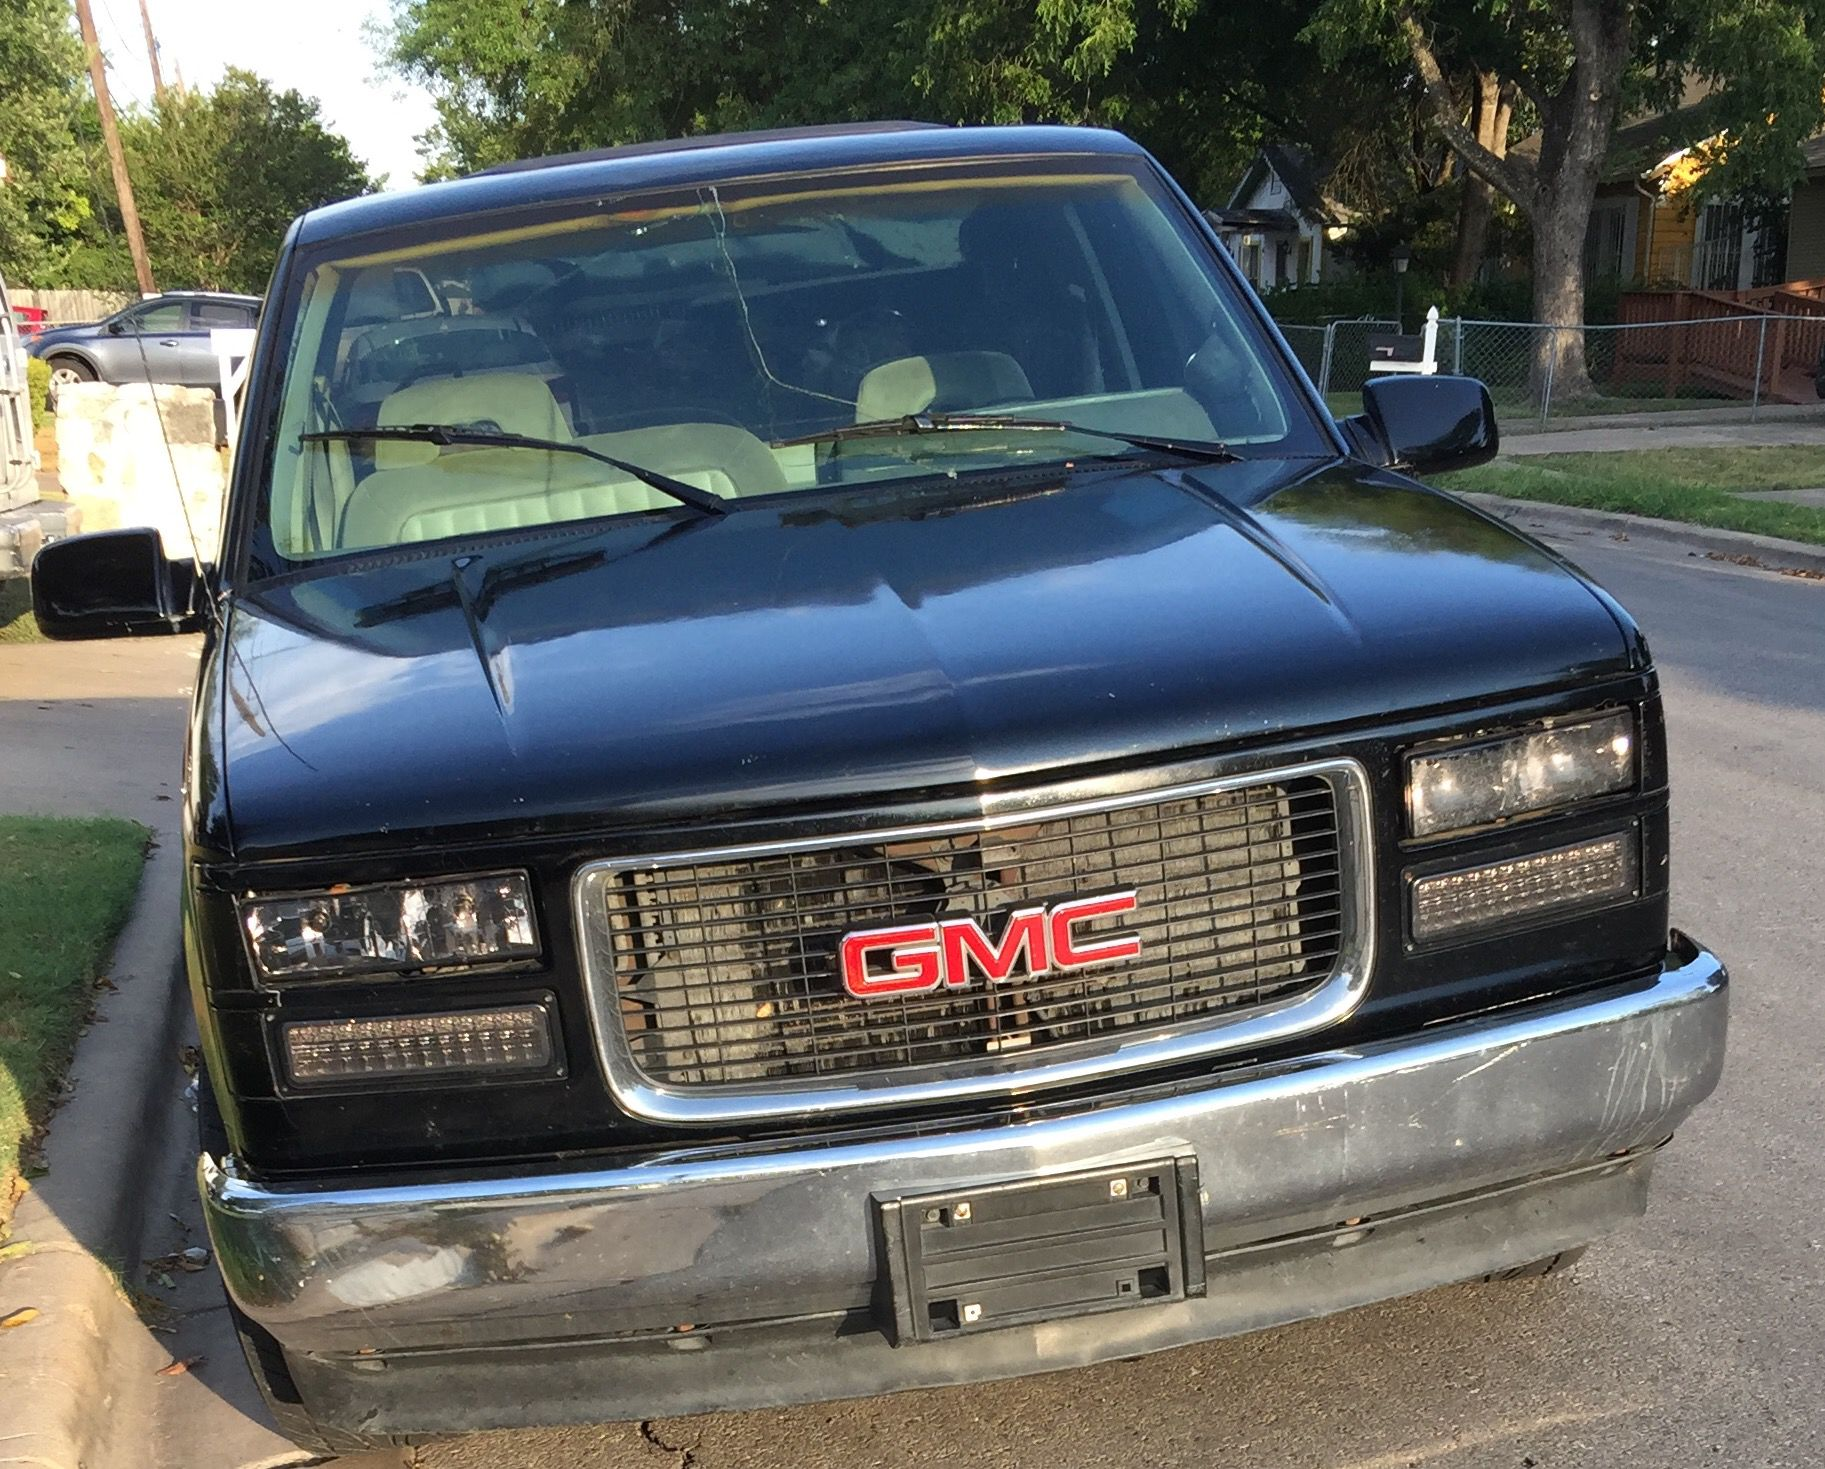 GMC Windshield Replacement Prices & Local Auto Glass Quotes